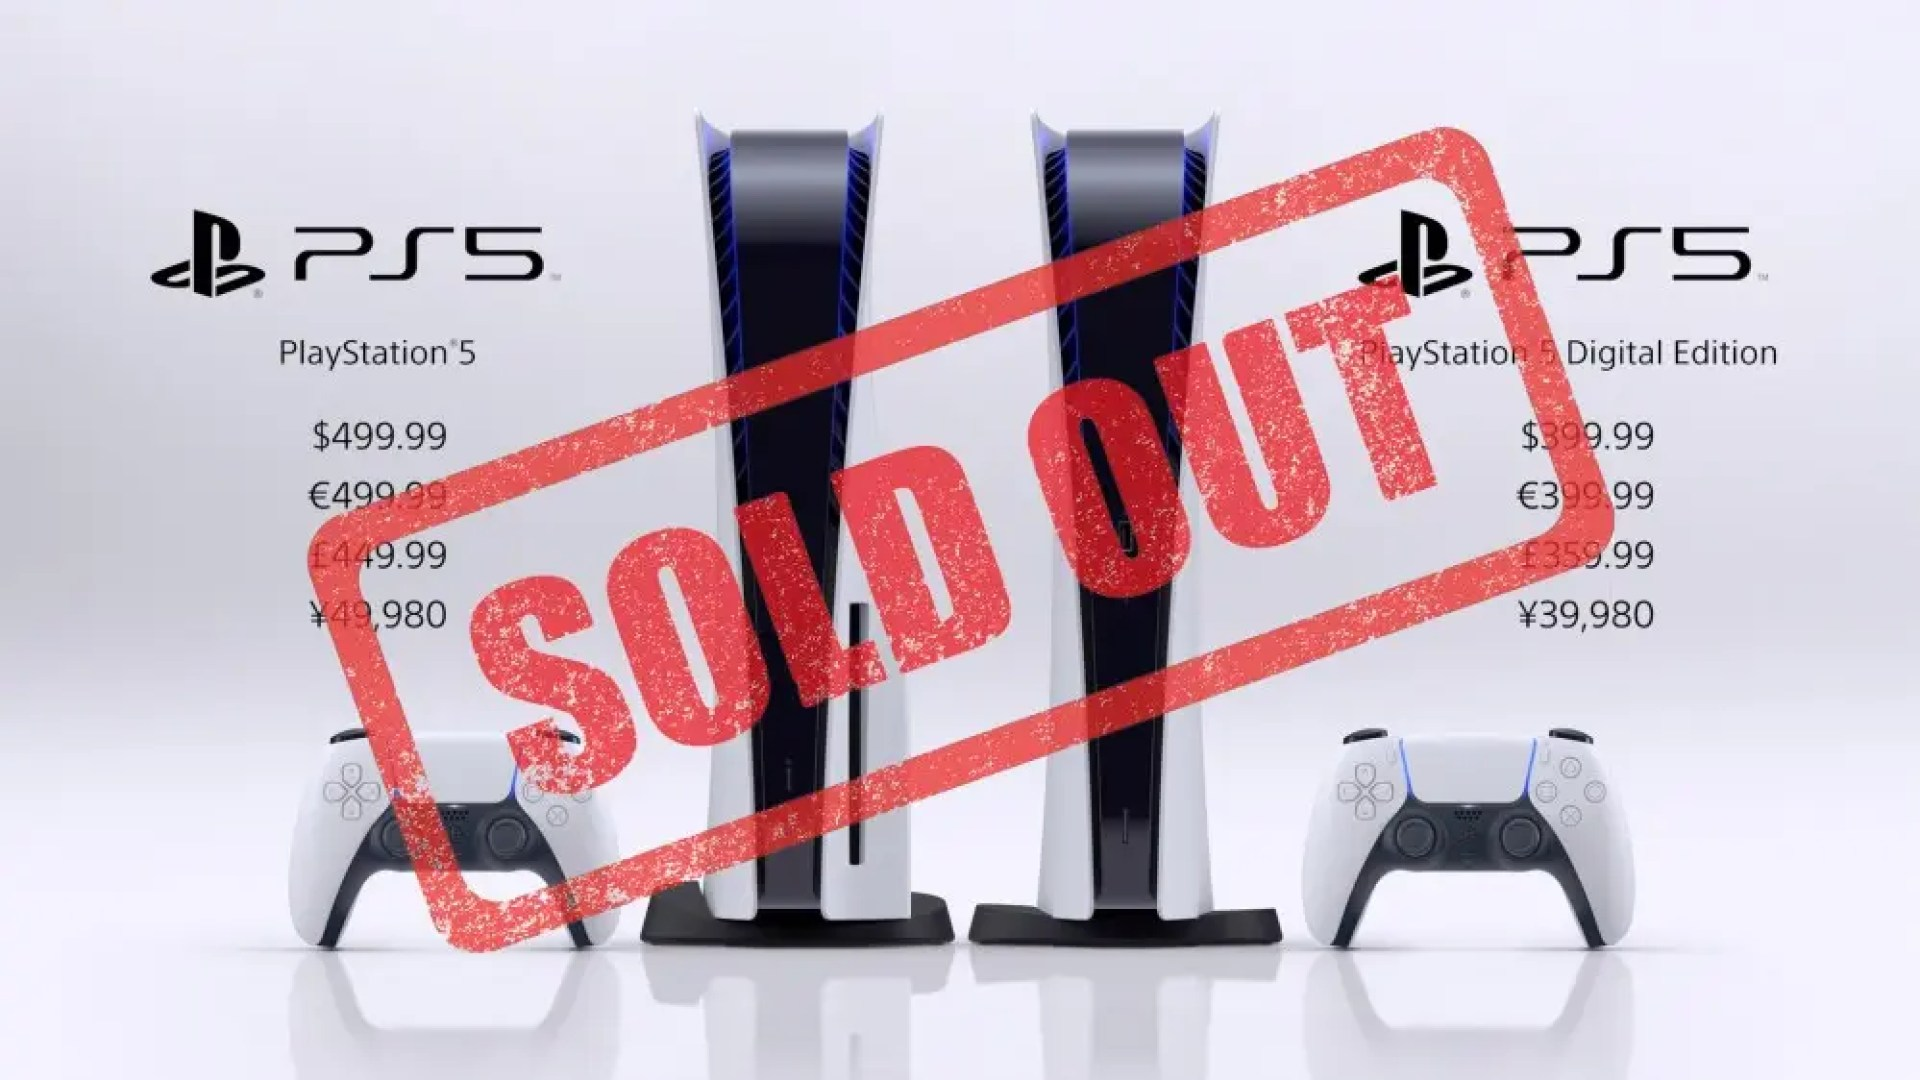 PS5 Preorders Are Sold Out, Here's How to Get Notified When They're  Available – Review Geek - TECHTELEGRAPH